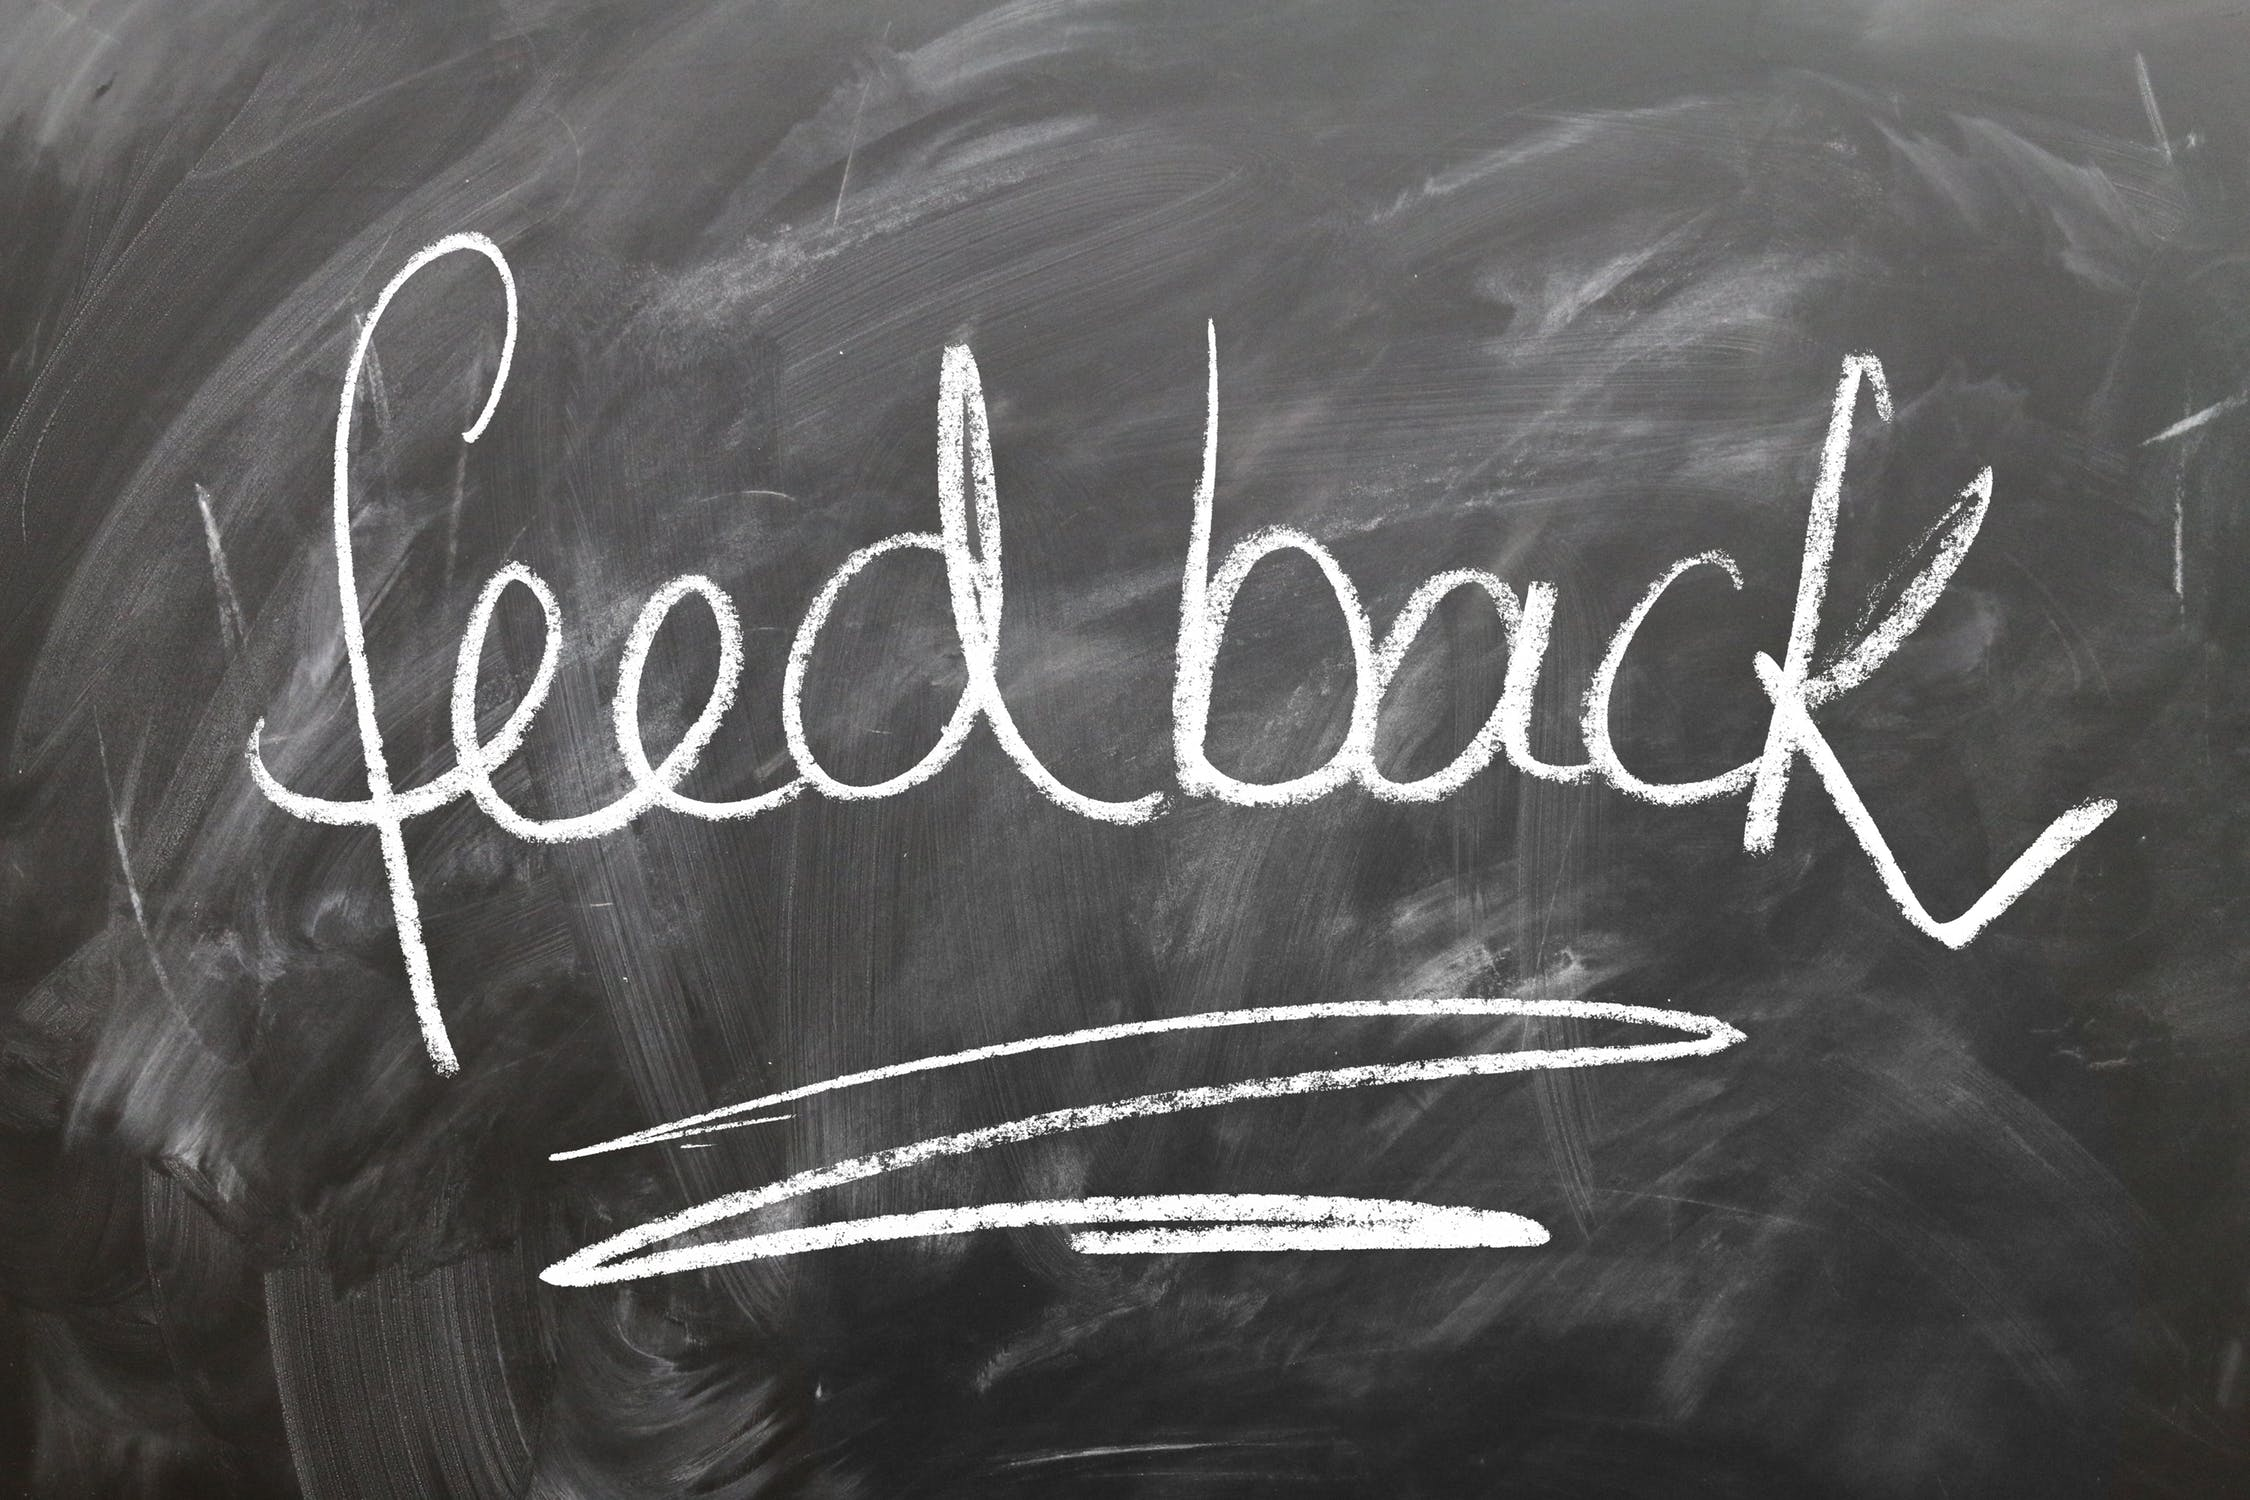 6 Principles of Constructive Feedback